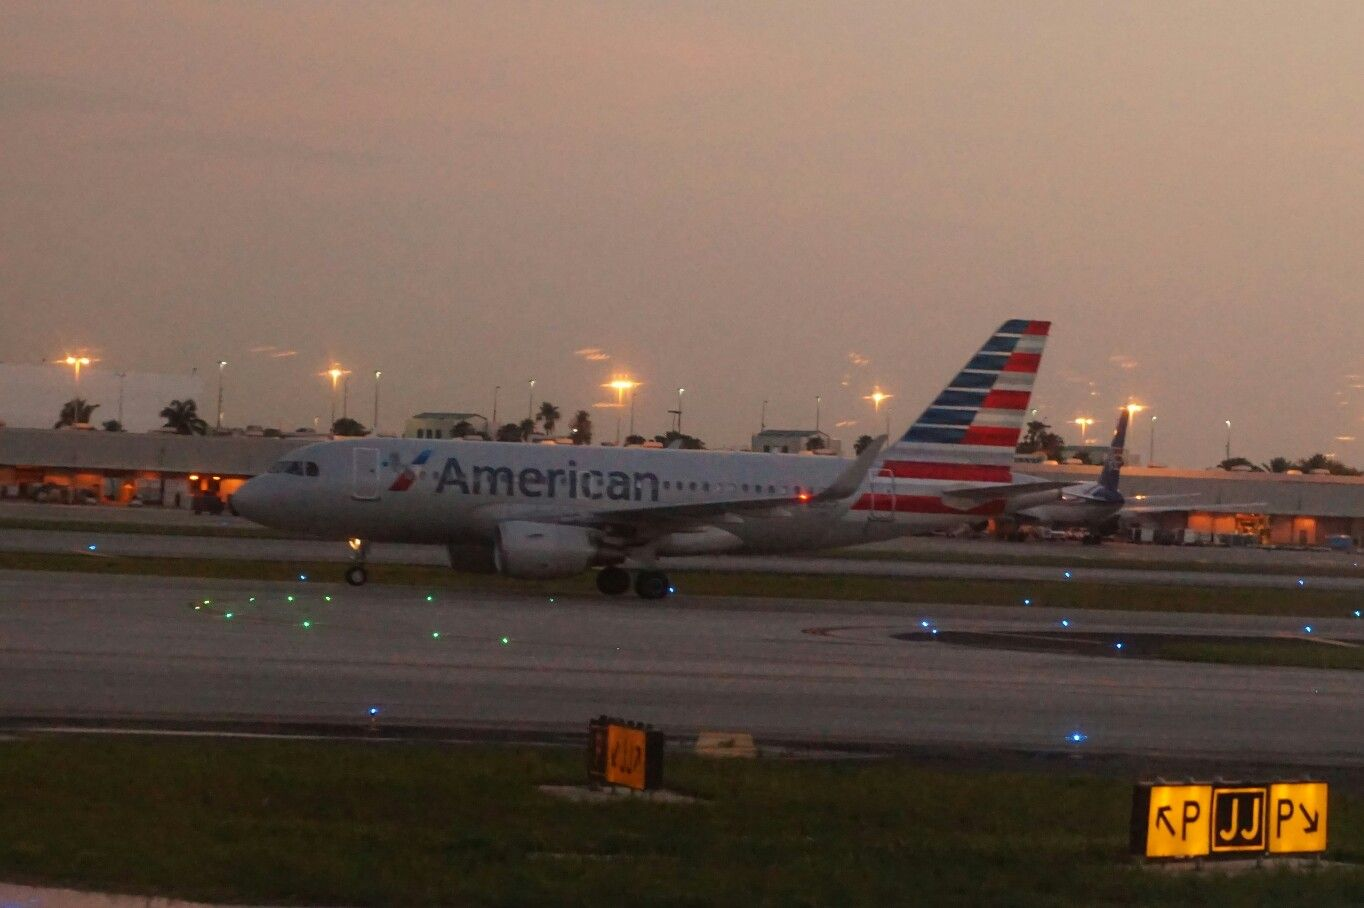 American Airlines A319 at Miami International Airport